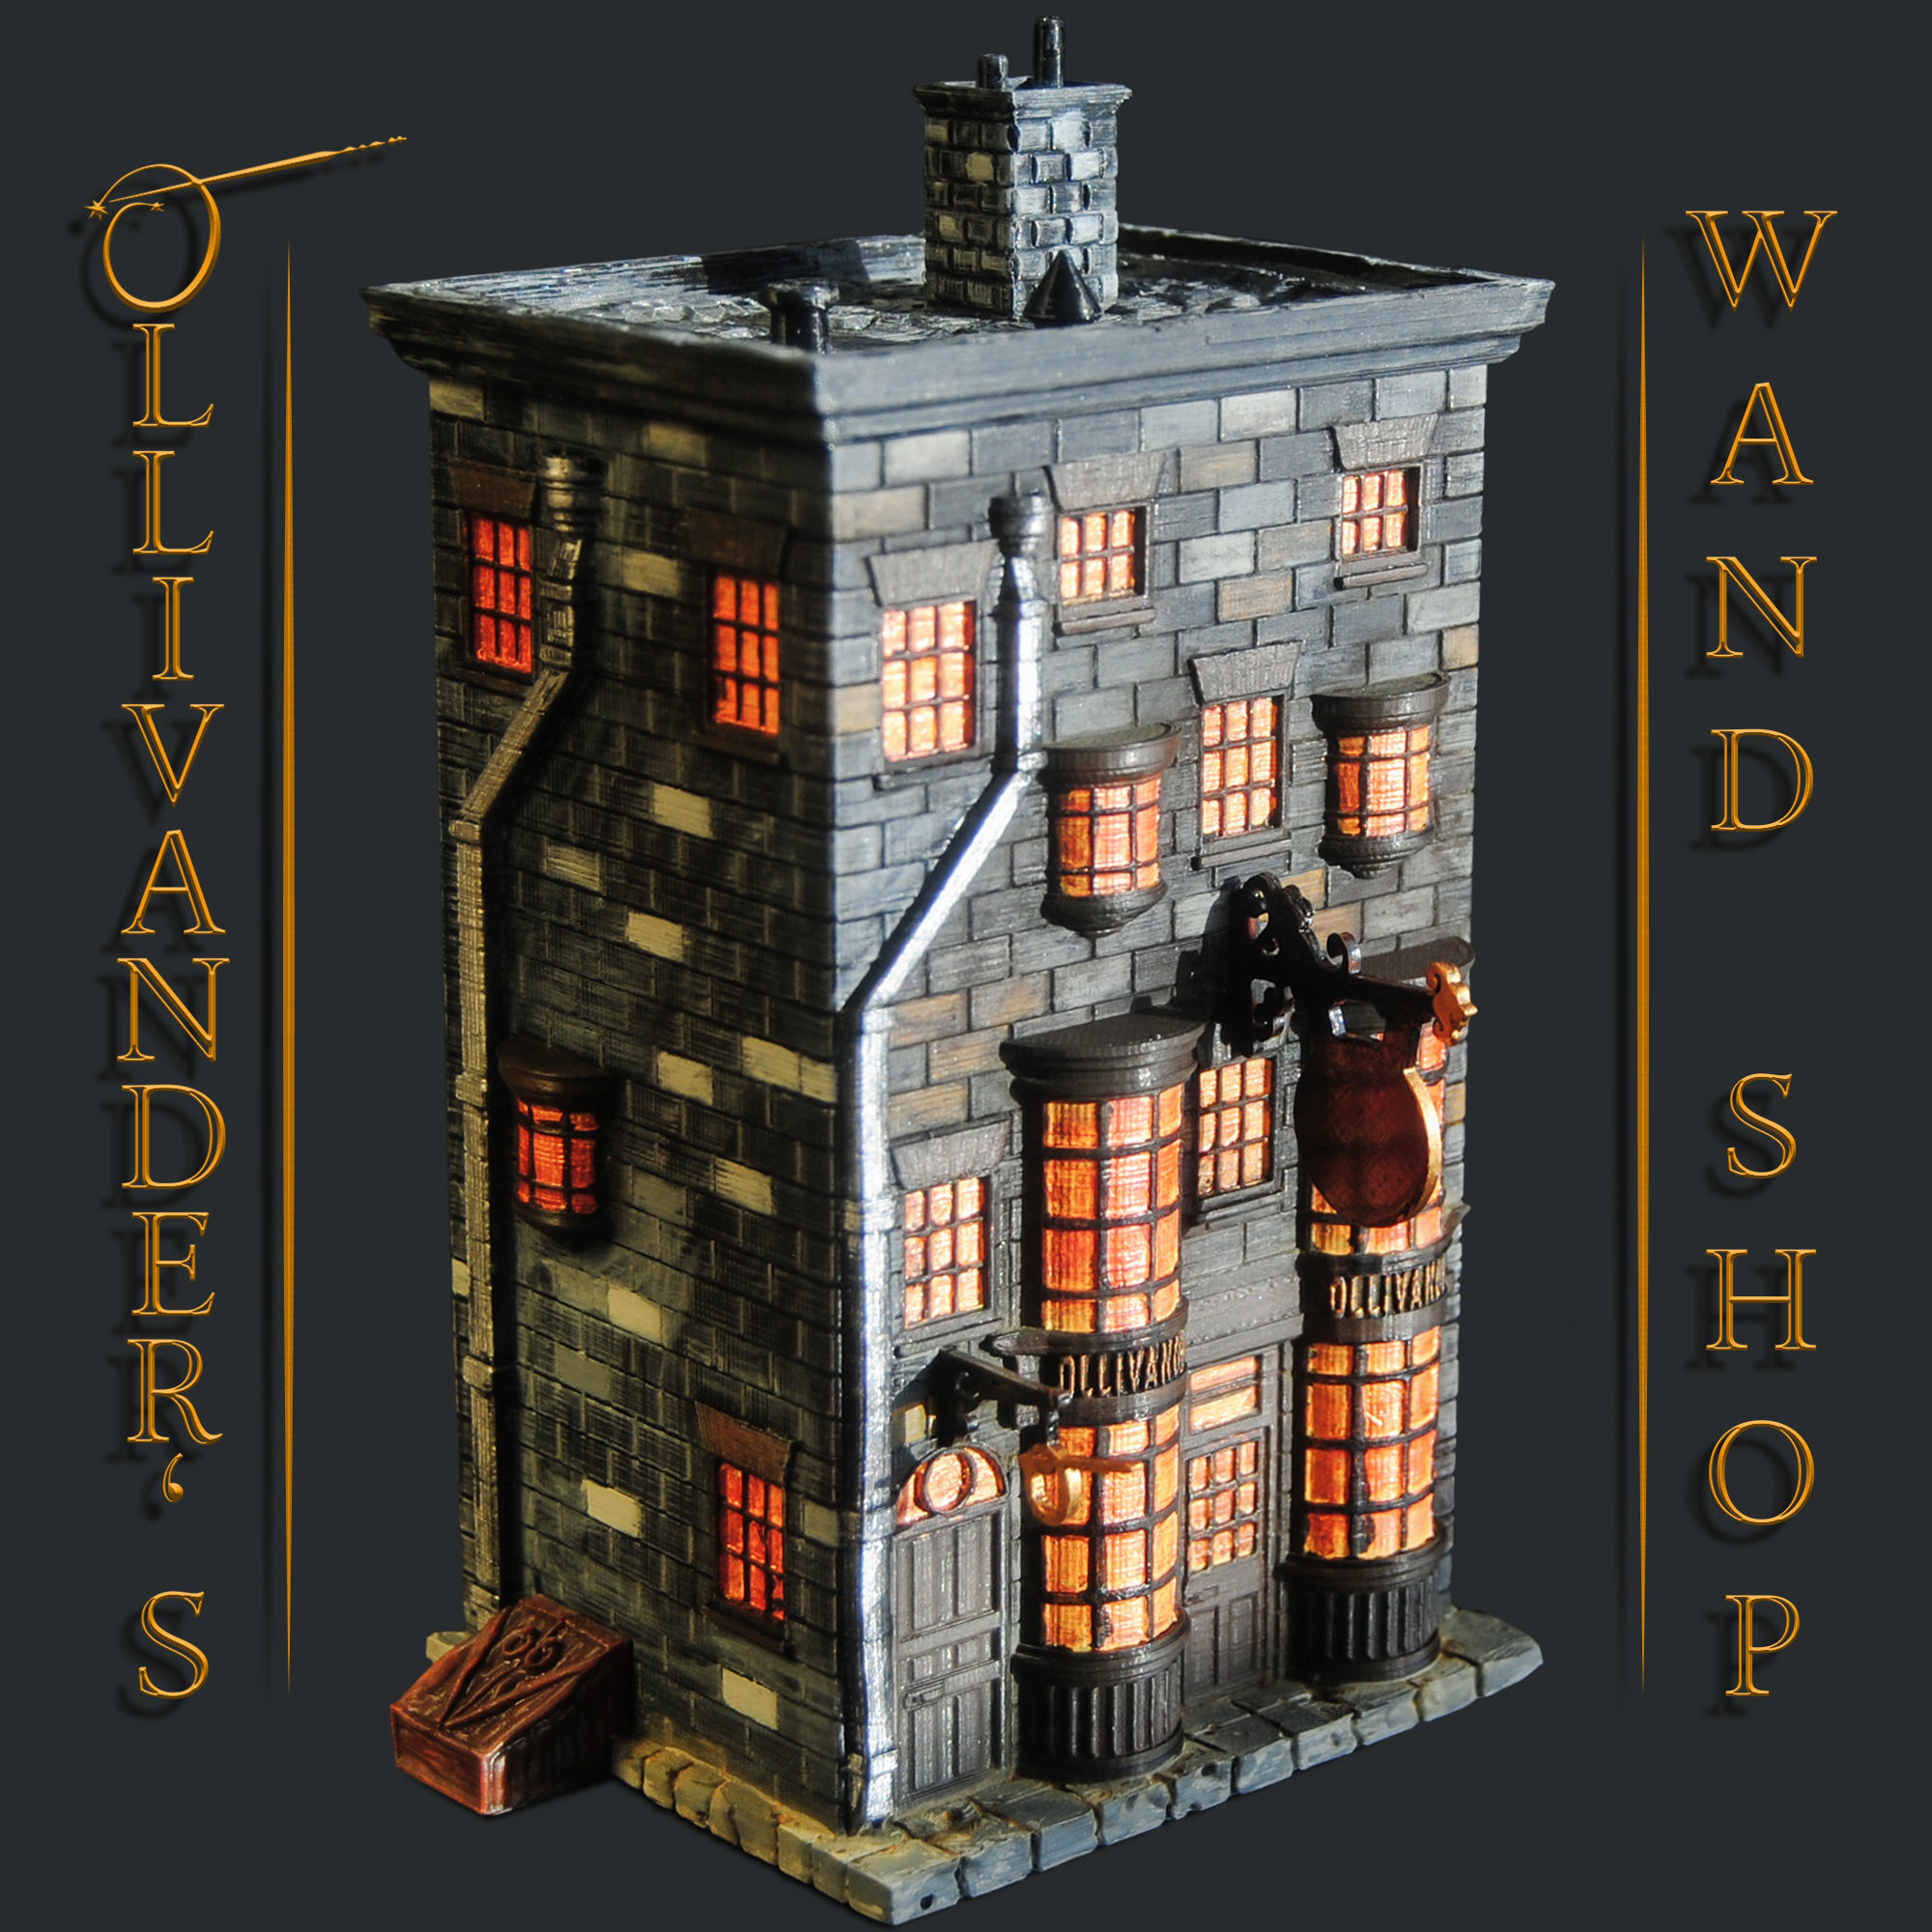 Ollivanders Wand Shop - Diagon Alley - Harry Potter